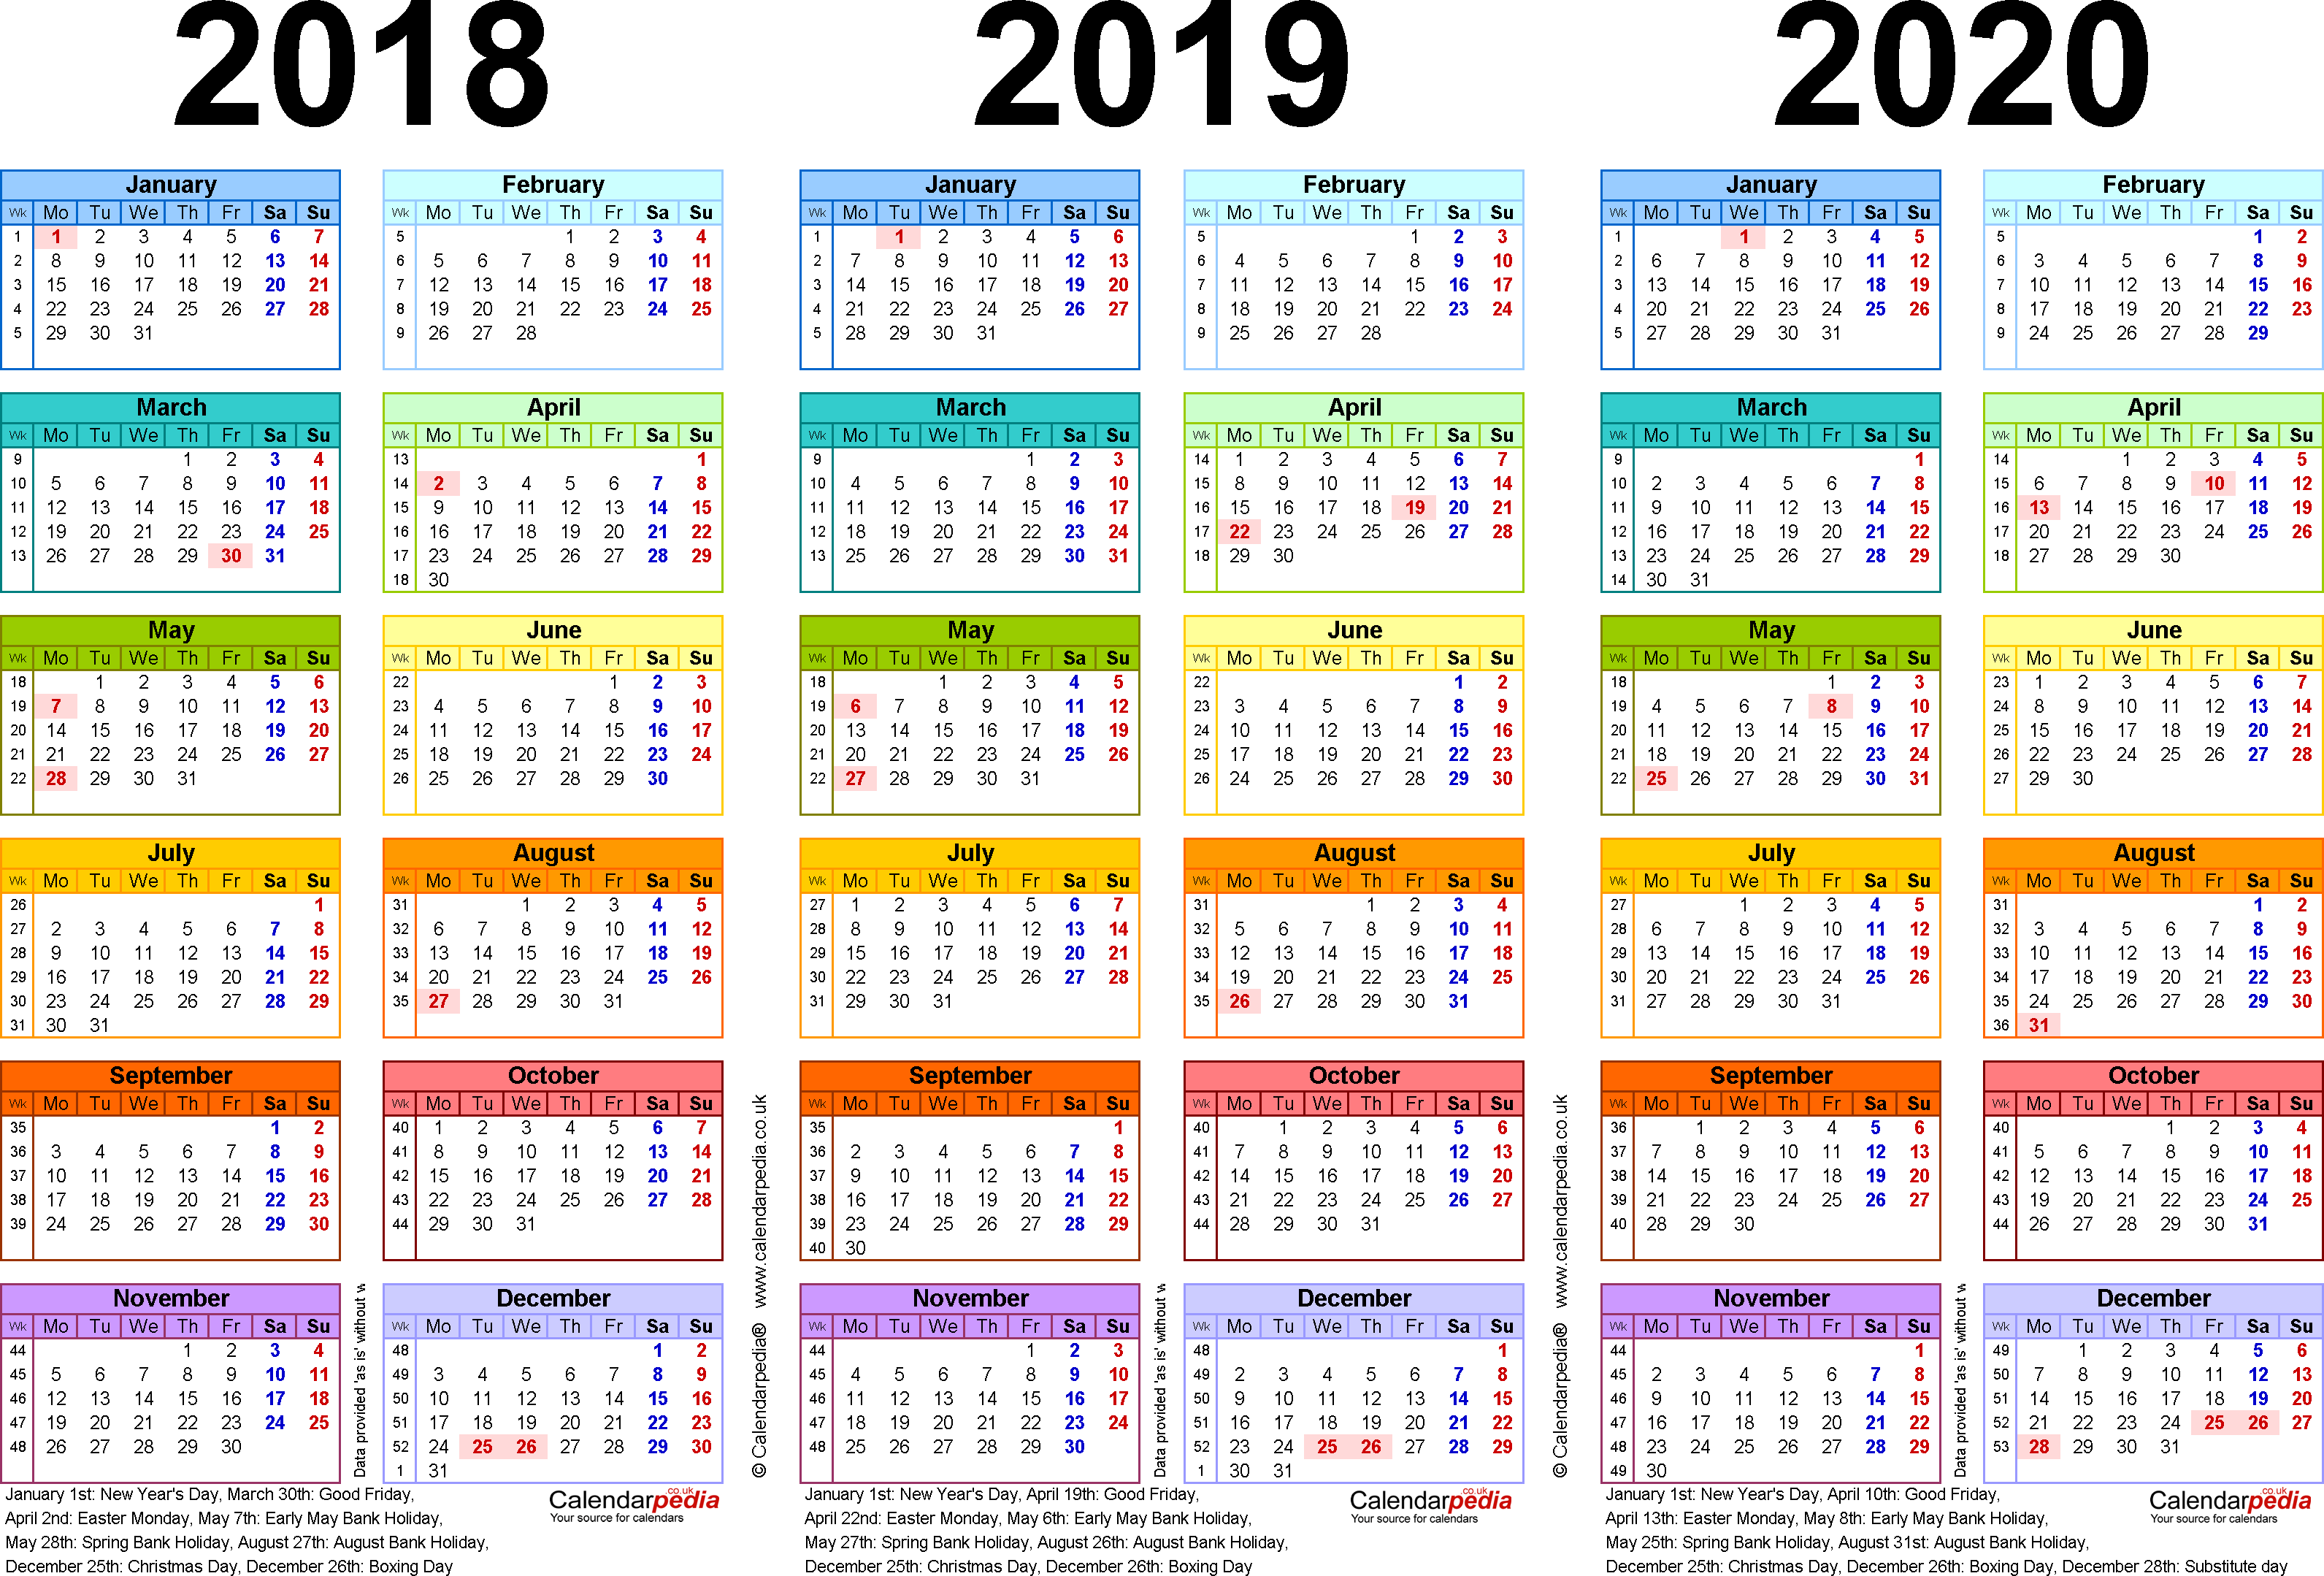 Download Template 1: Excel template for three year calendar 2018-2020 in colour (landscape orientation, 1 page, A4)